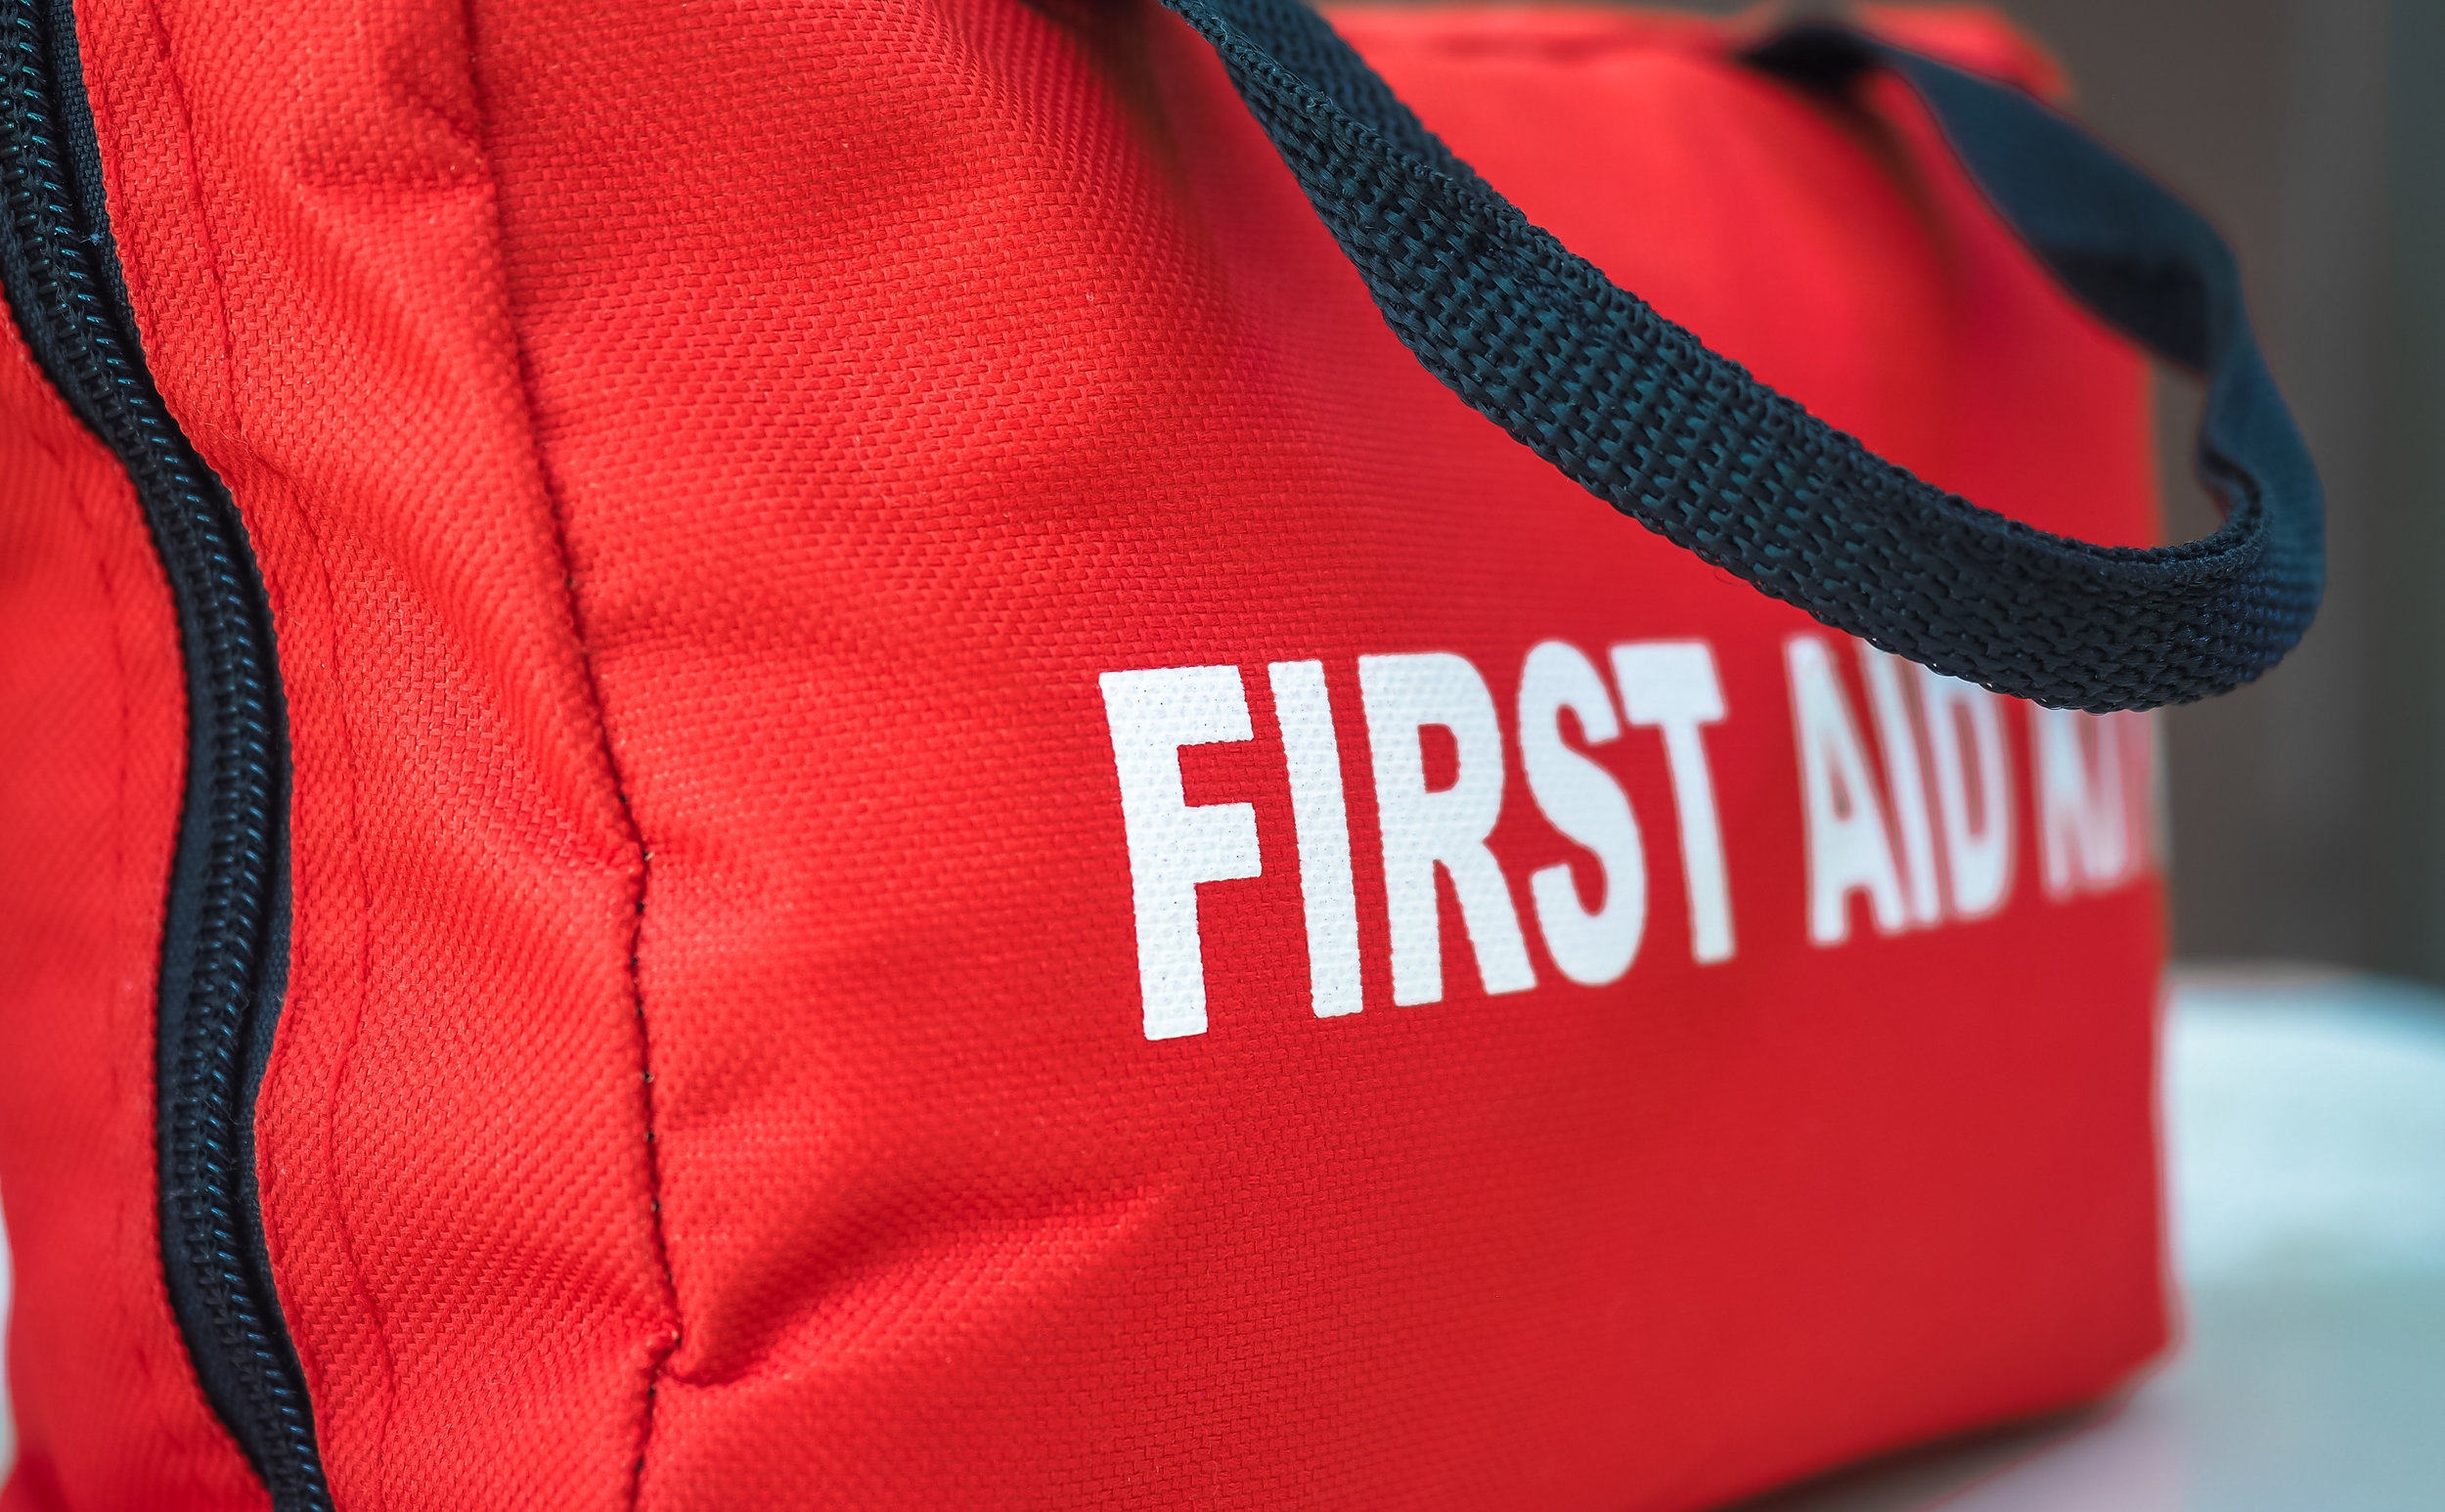 first-aid-cpr-aed-certificate.jpg